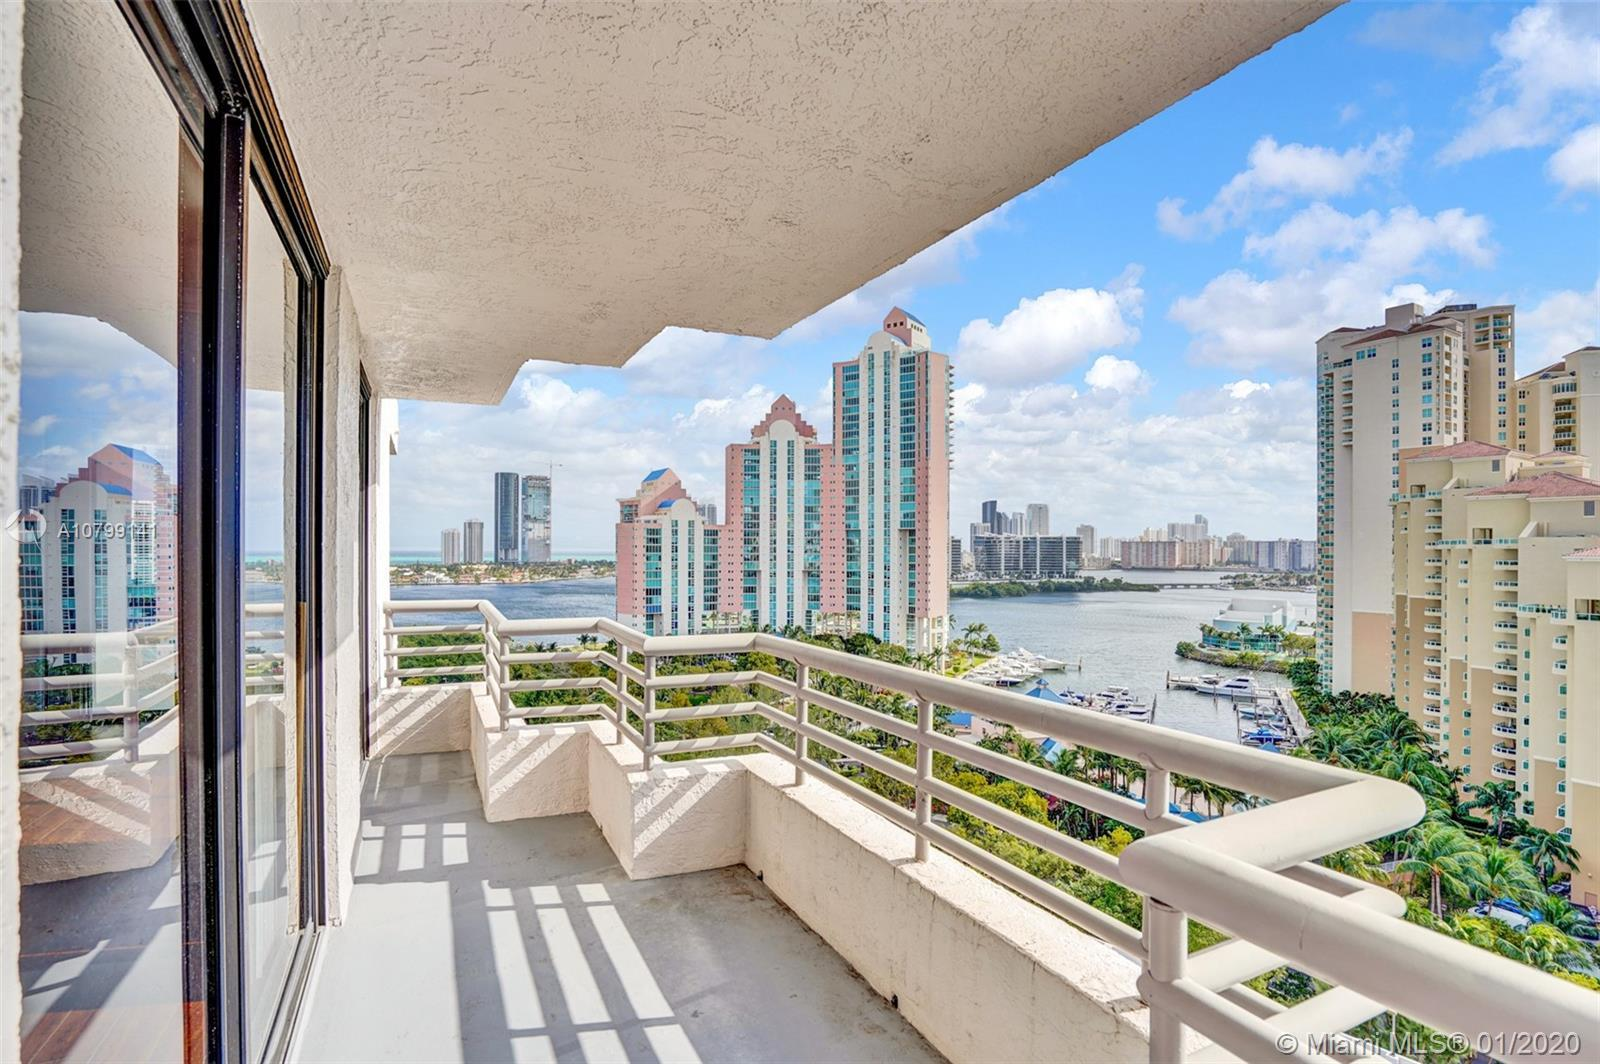 WELCOME TO AVENTURA! A CENTRALLY LOCATED CITY, TRUELY IN THE HEART OF IT ALL. EXPRESSWAY LEADING DIR